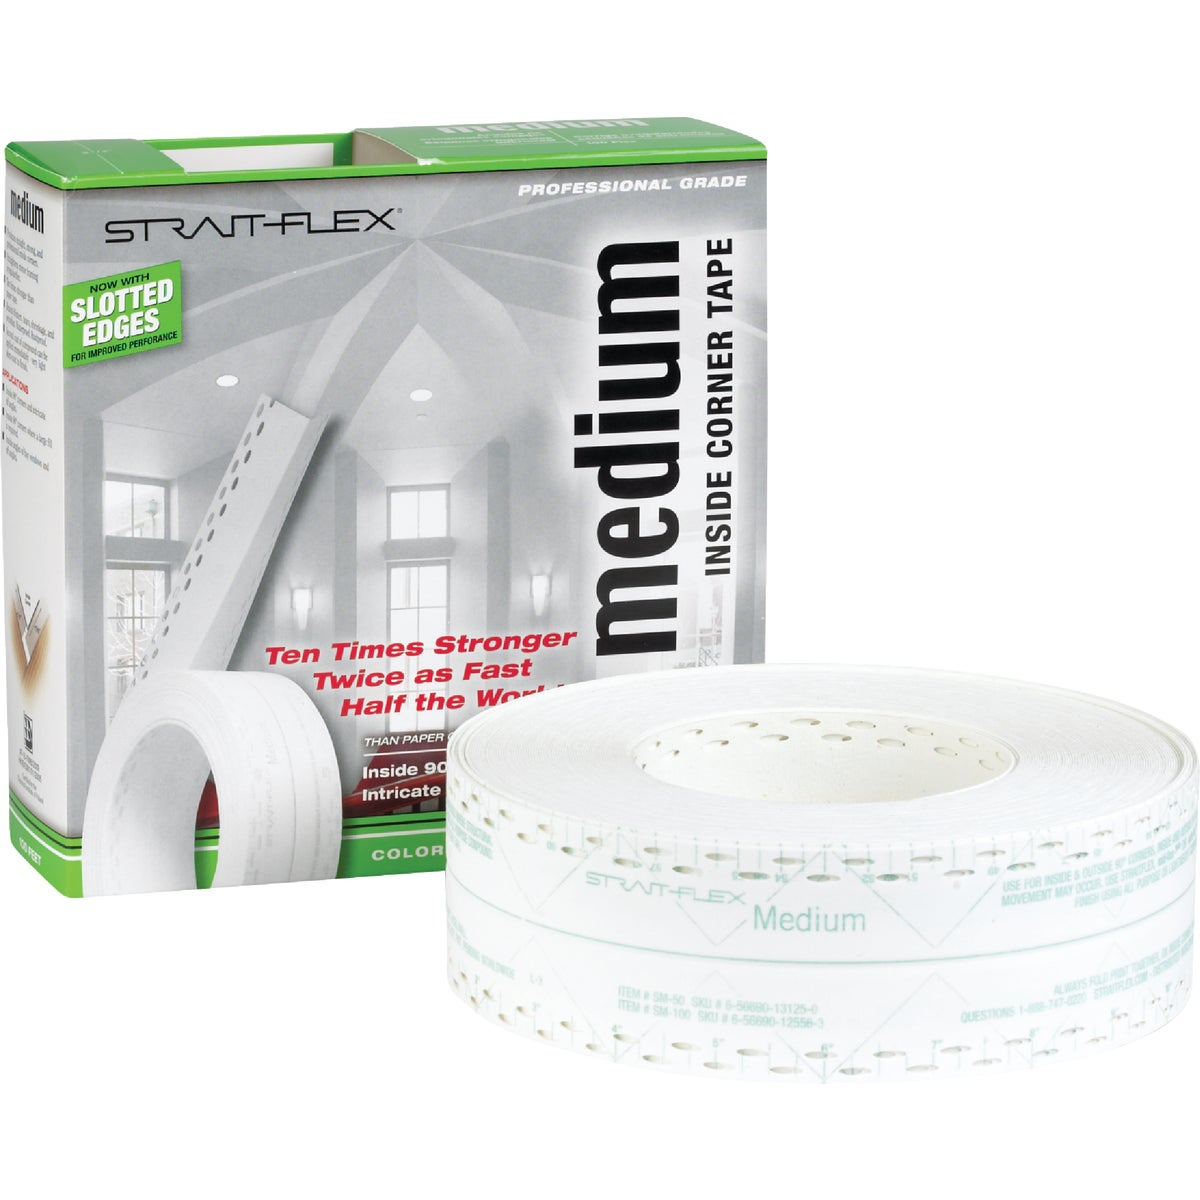 MEDIUM DRYWALL CRNR TAPE - SM-100 by Strait Flex Intl Inc